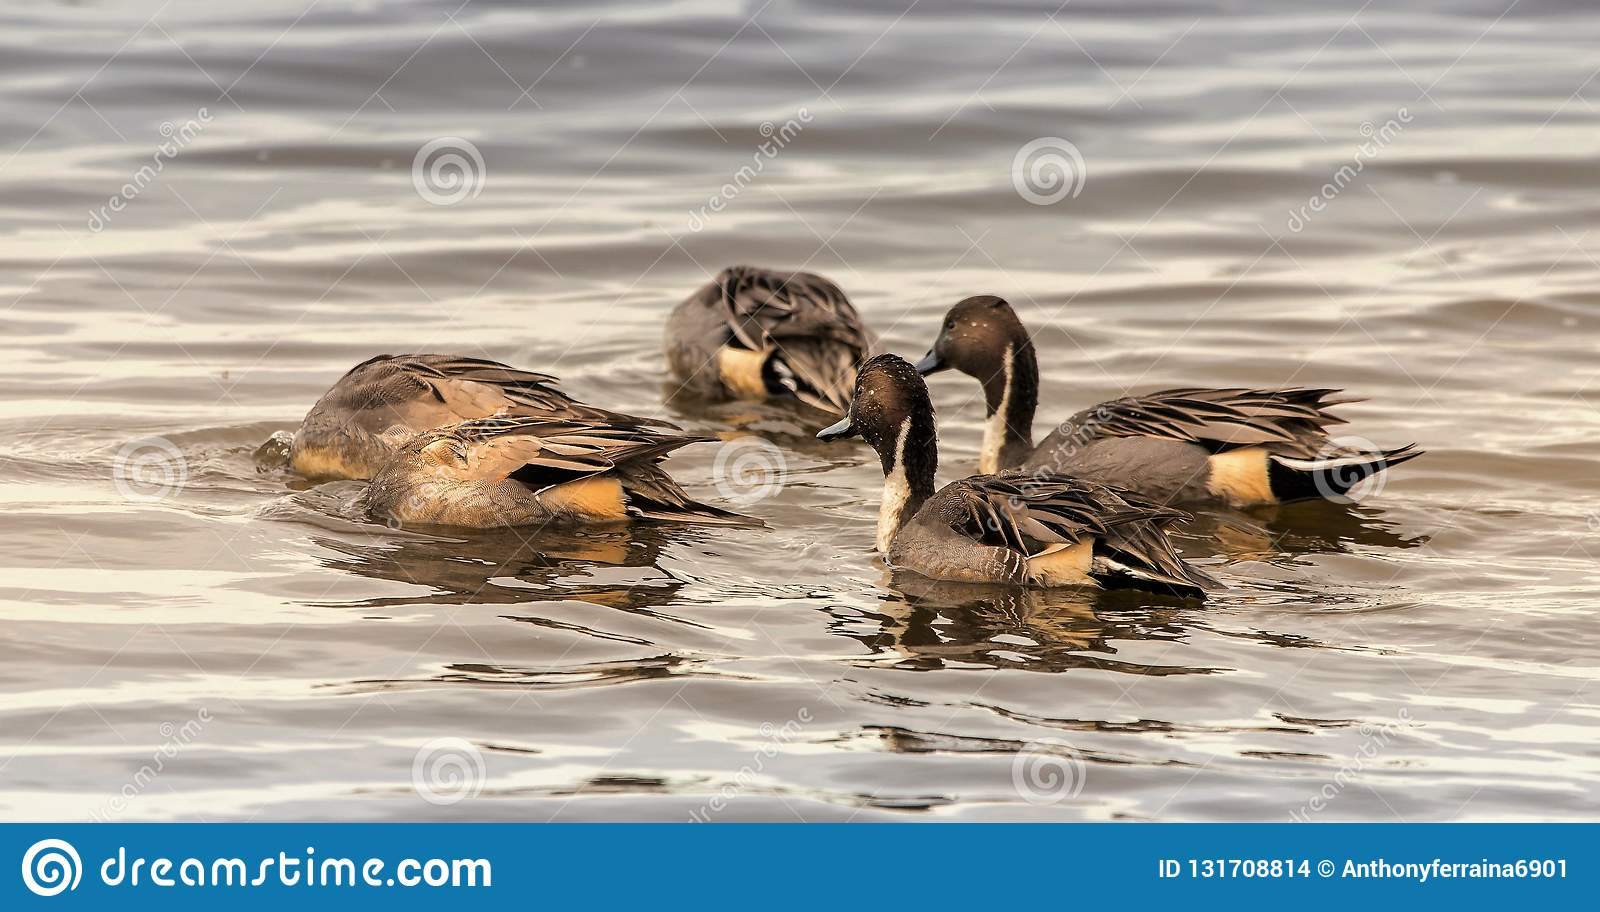 Northern Pintail Ducks bobbing for food